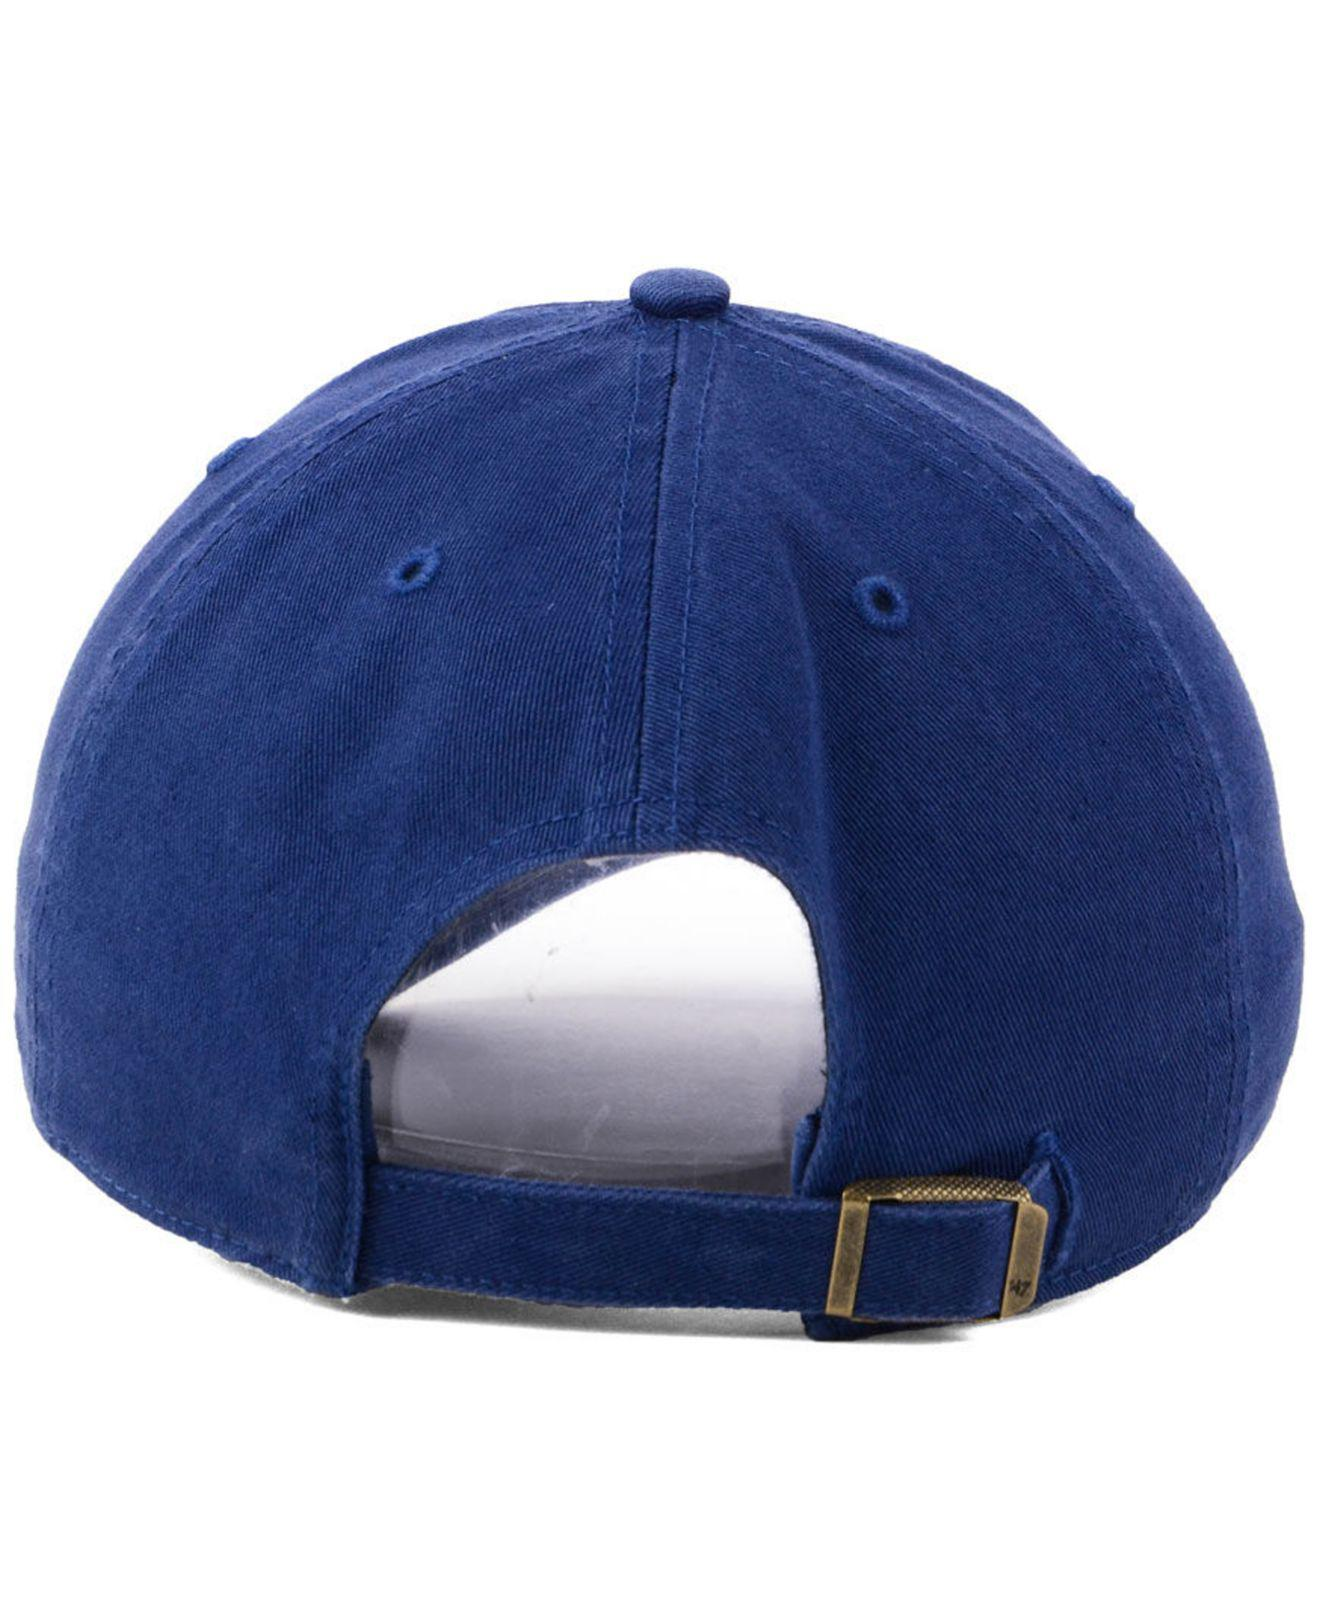 new arrival b8e40 4a9c5 ... greece 47 brand st. louis cardinals timber blue clean up cap for men  lyst.